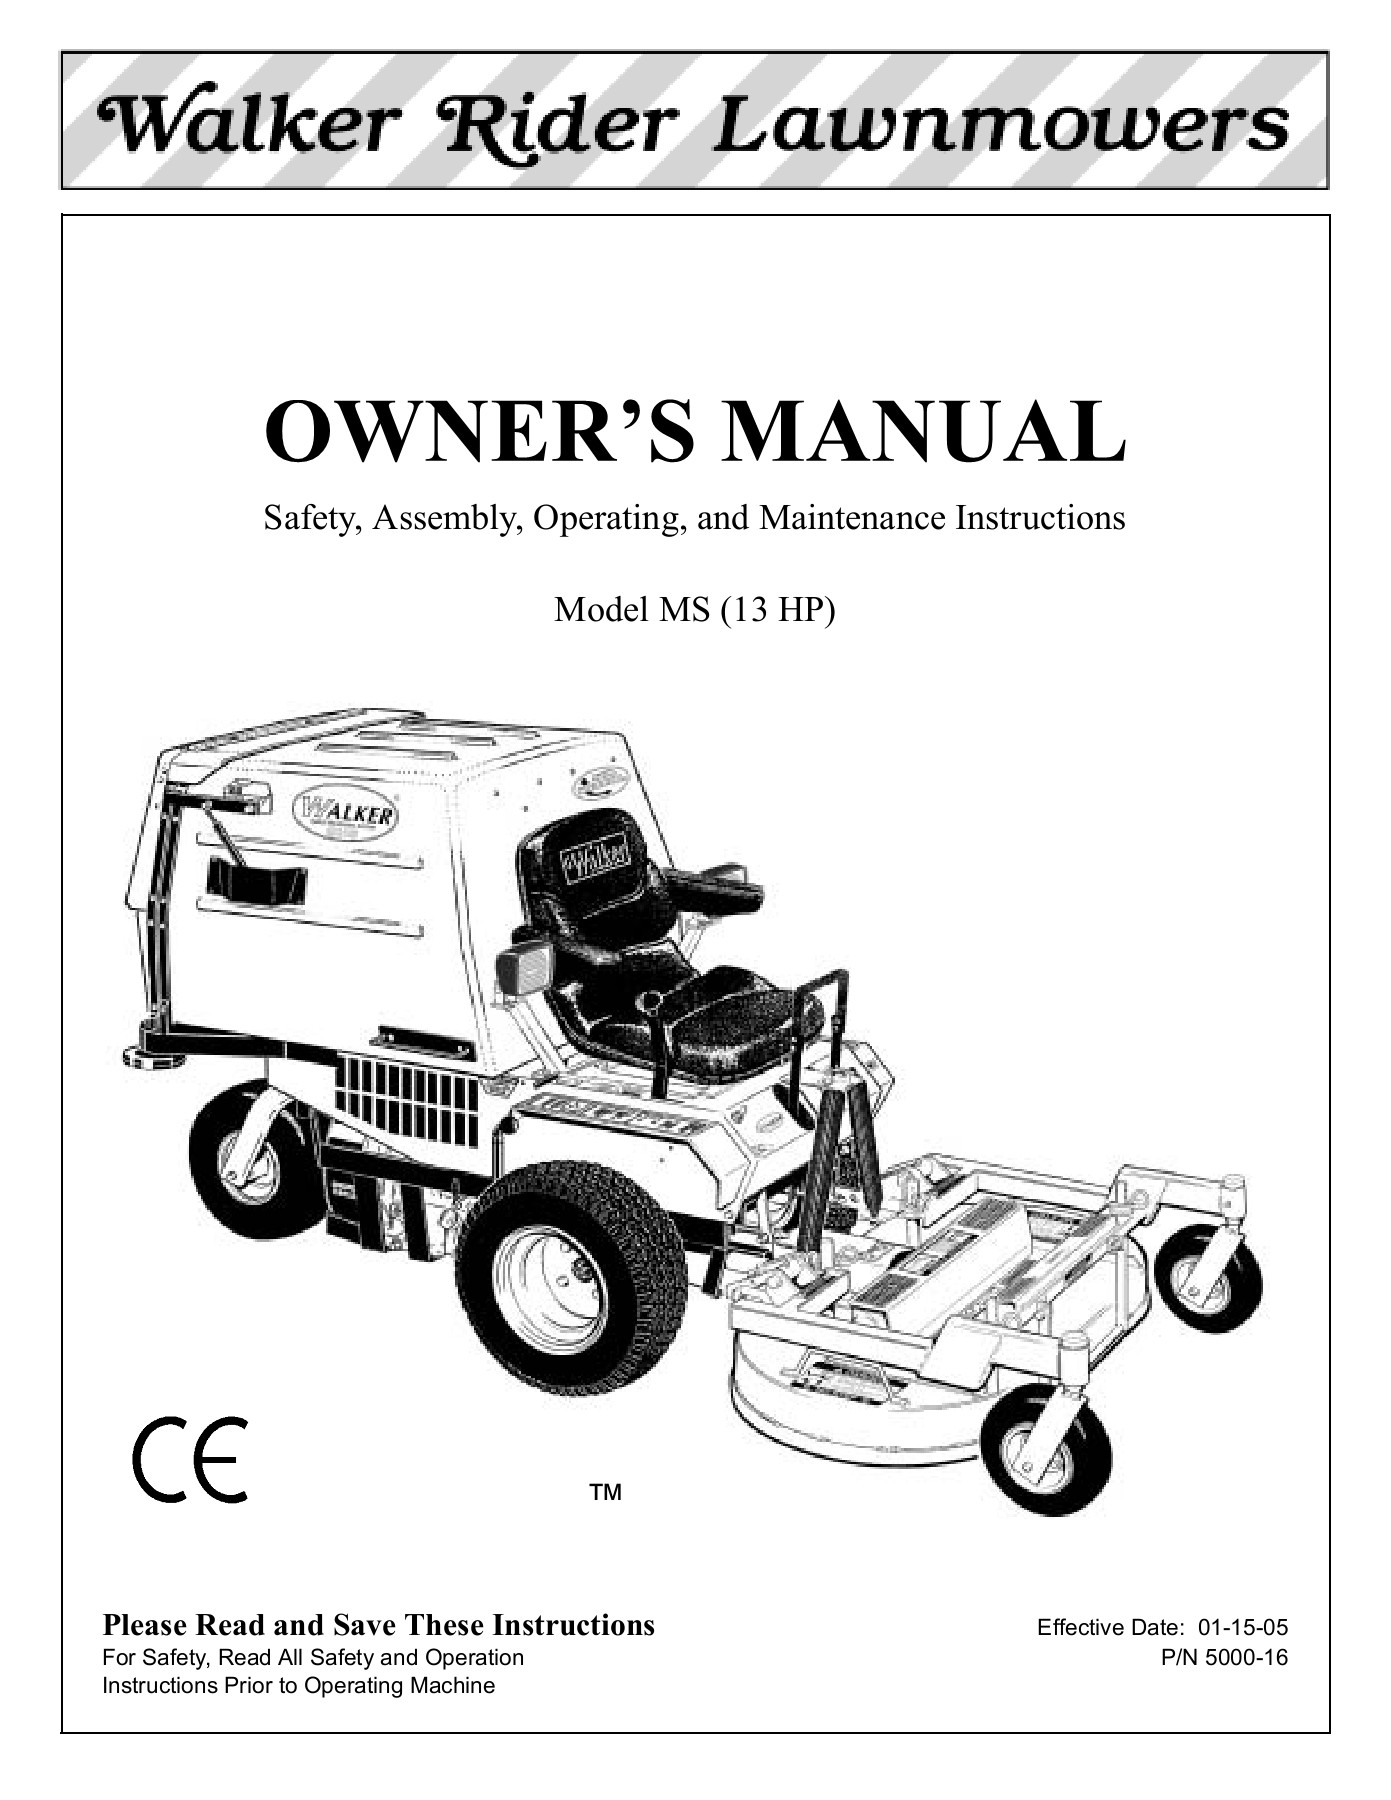 OWNER'S MANUAL - Walker Manufacturing Pages 51 - 72 - Text